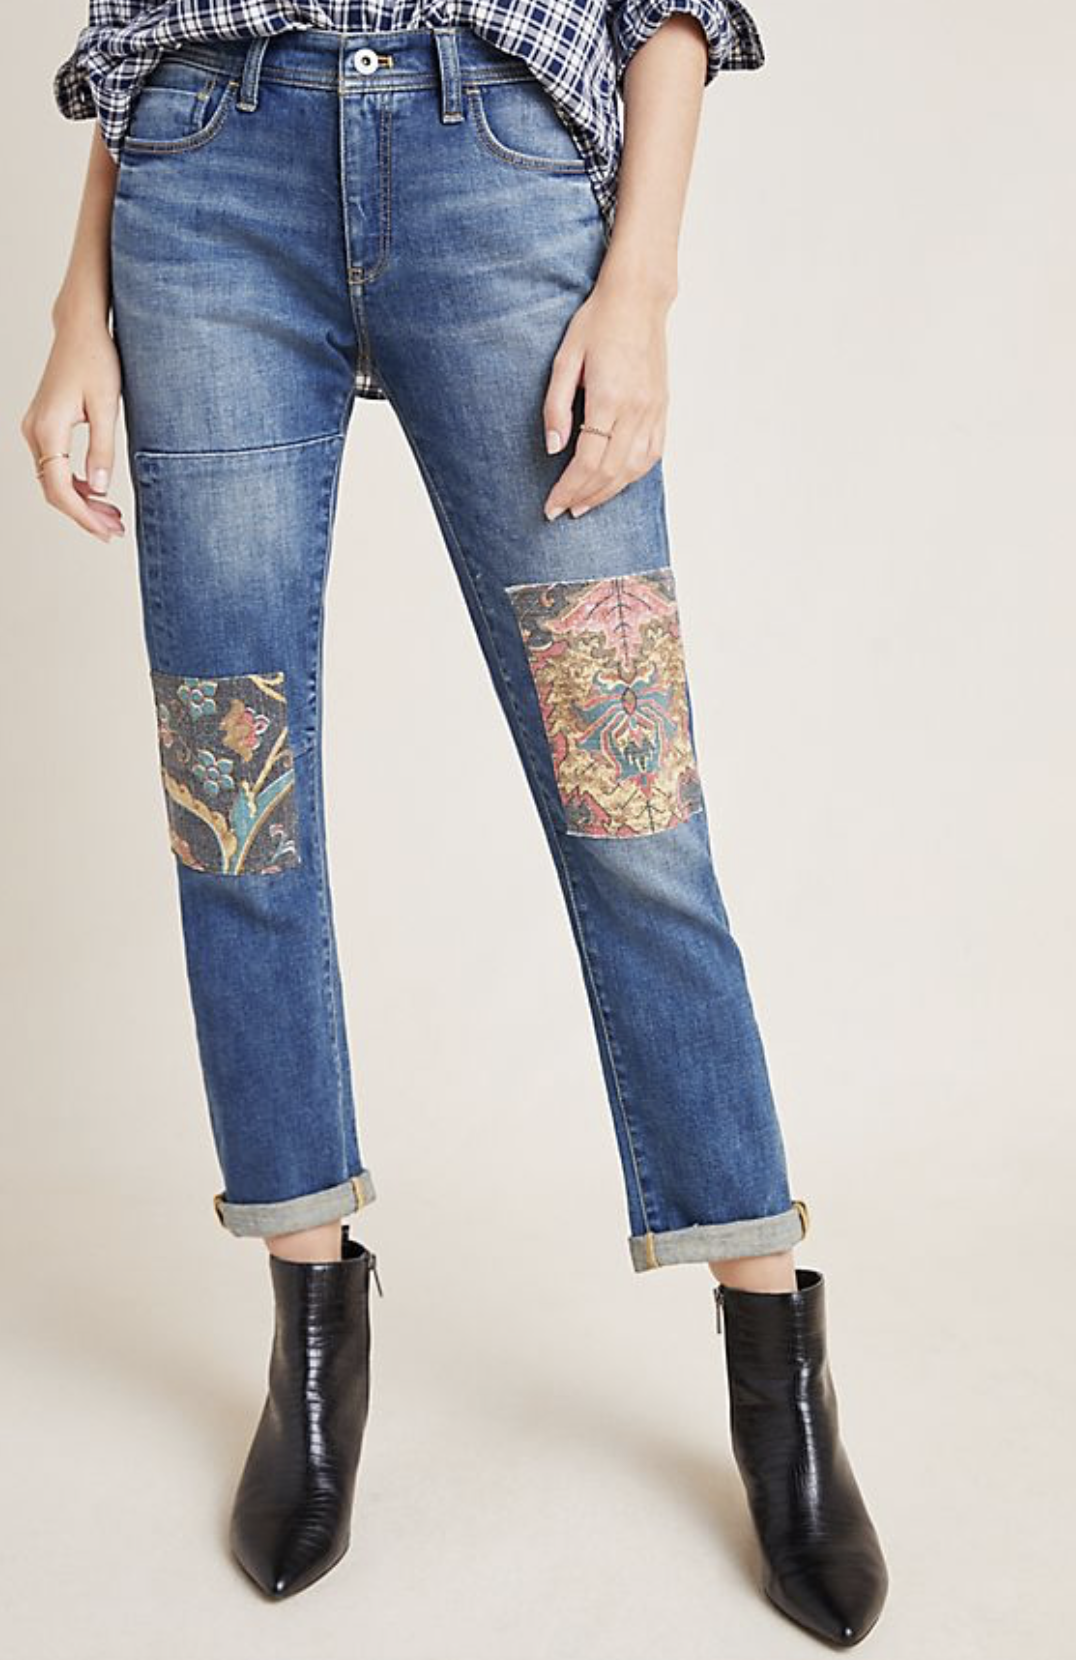 Photo courtesy of Anthropologie.   Anthropologie Pilcro Tapestry Mid-Rise Boyfriend Jeans - $160